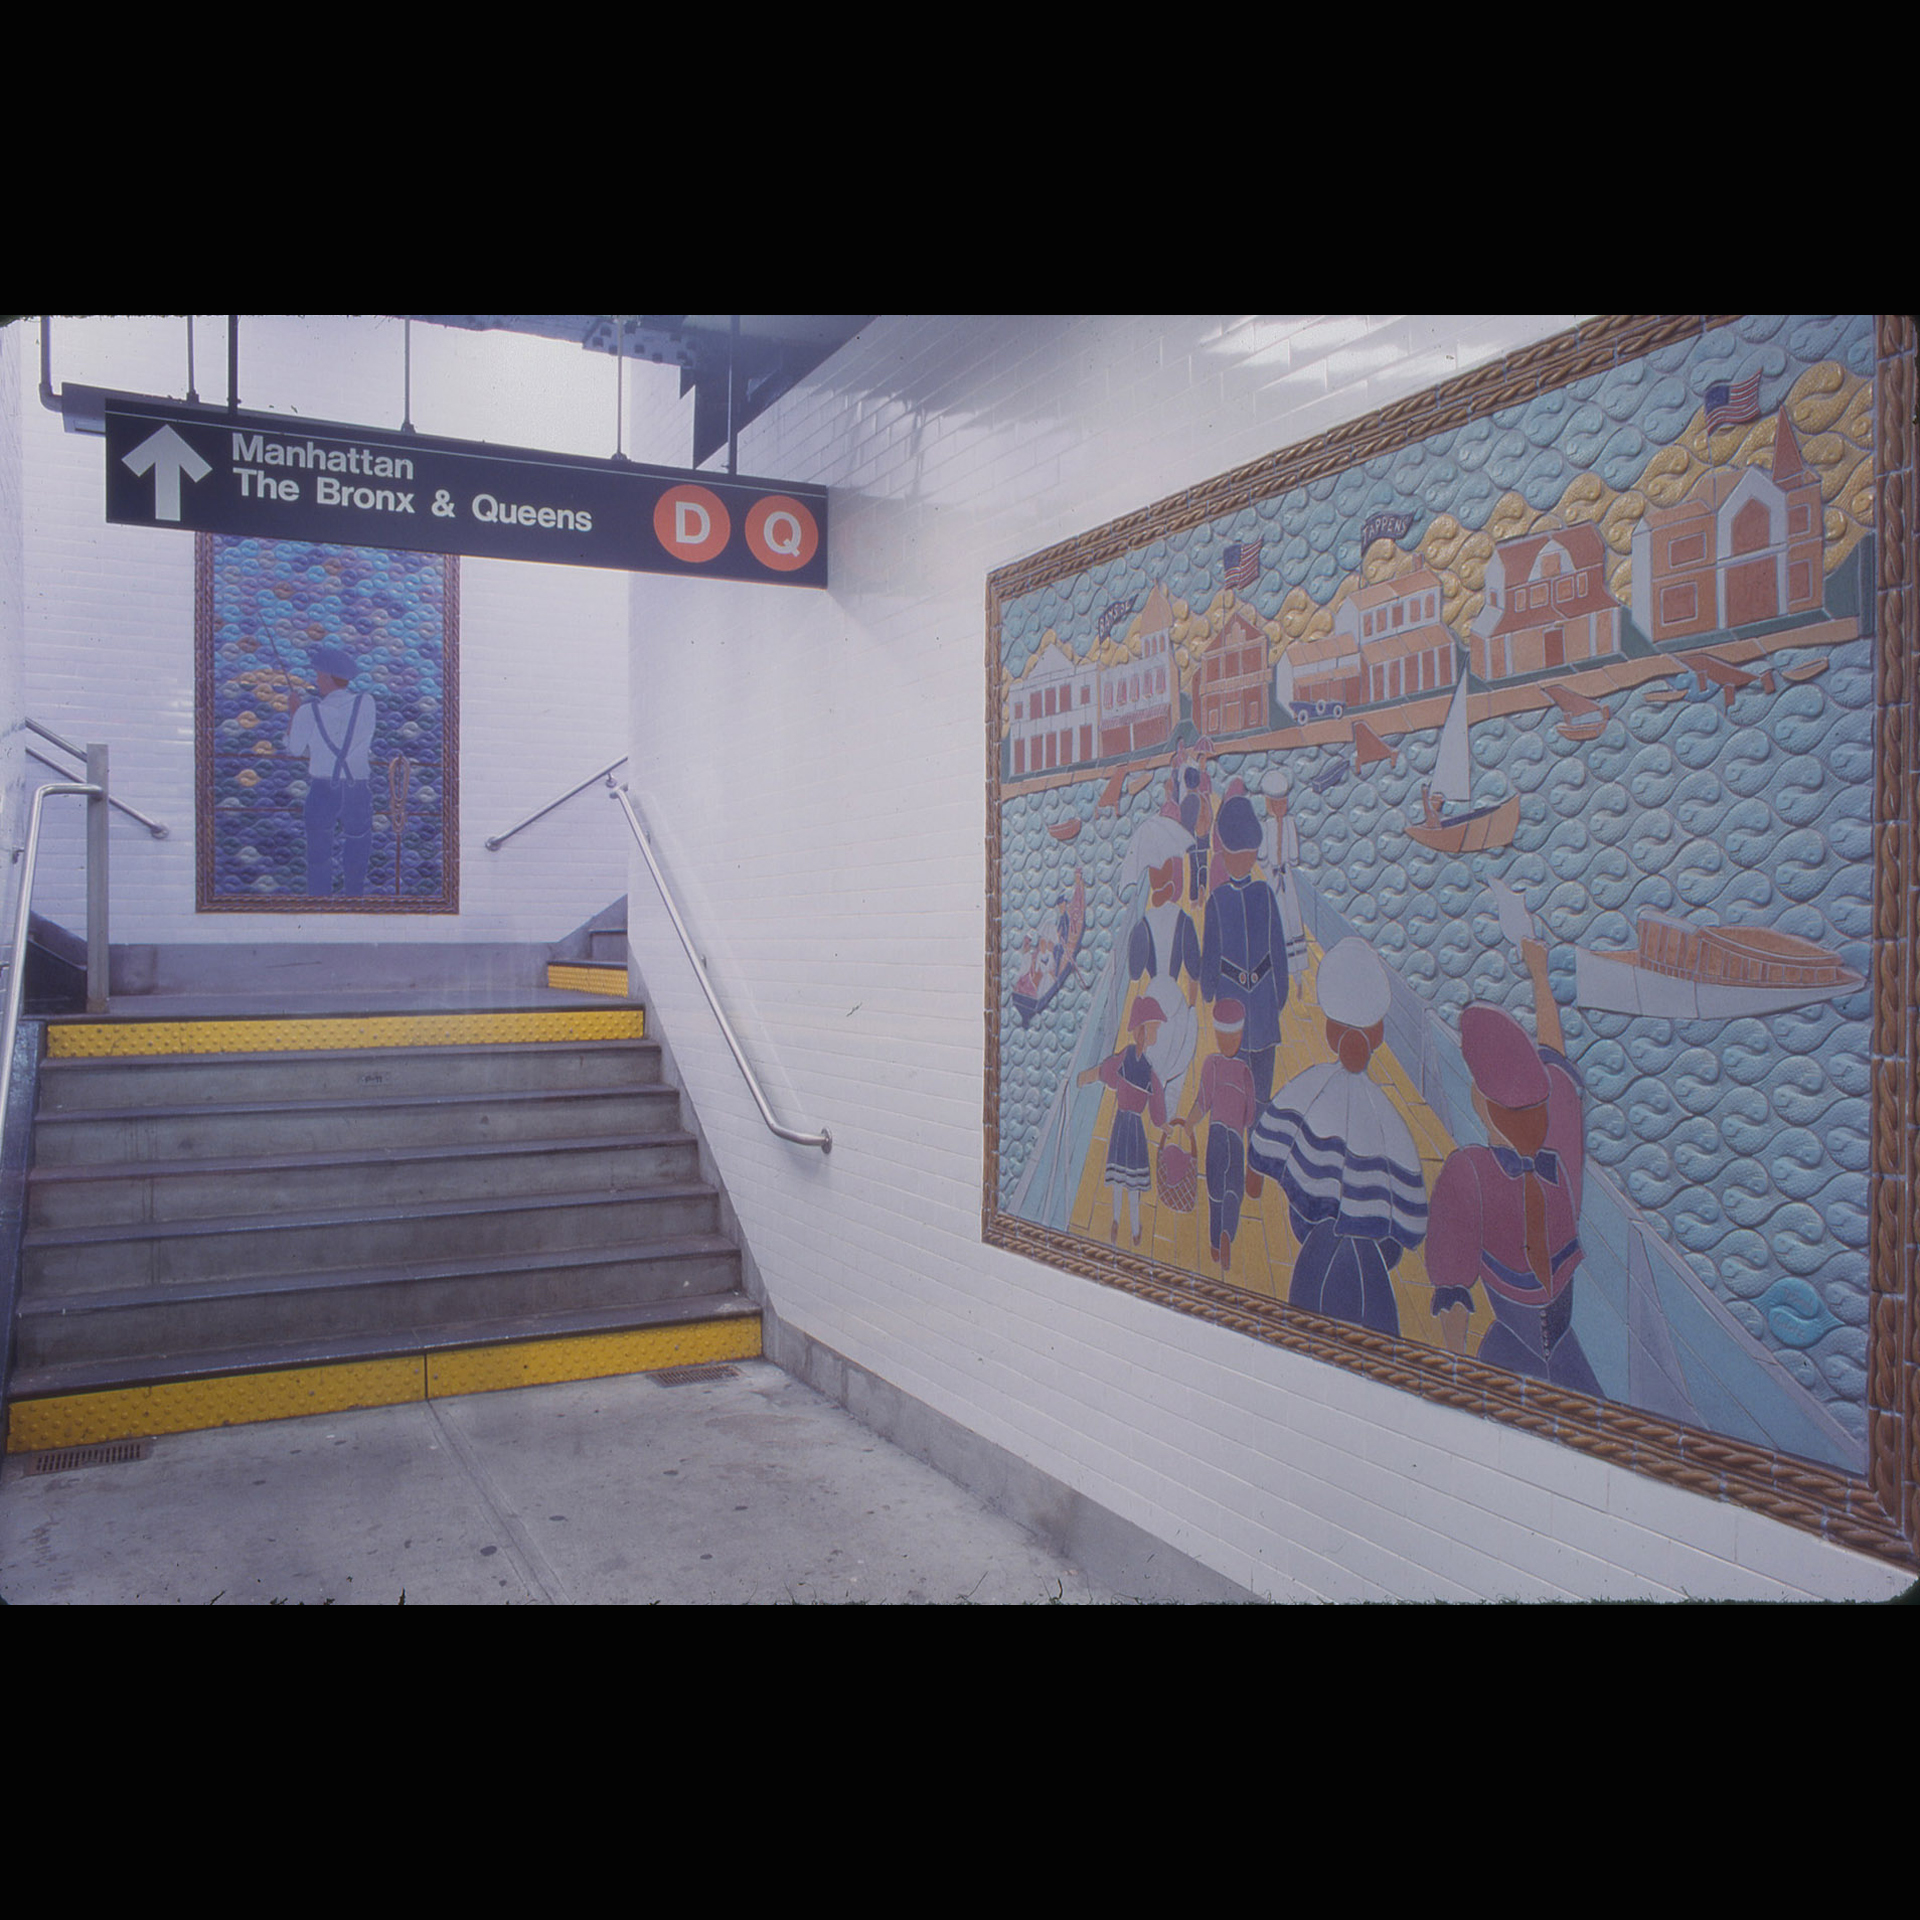 Sheepshead Bay Subway